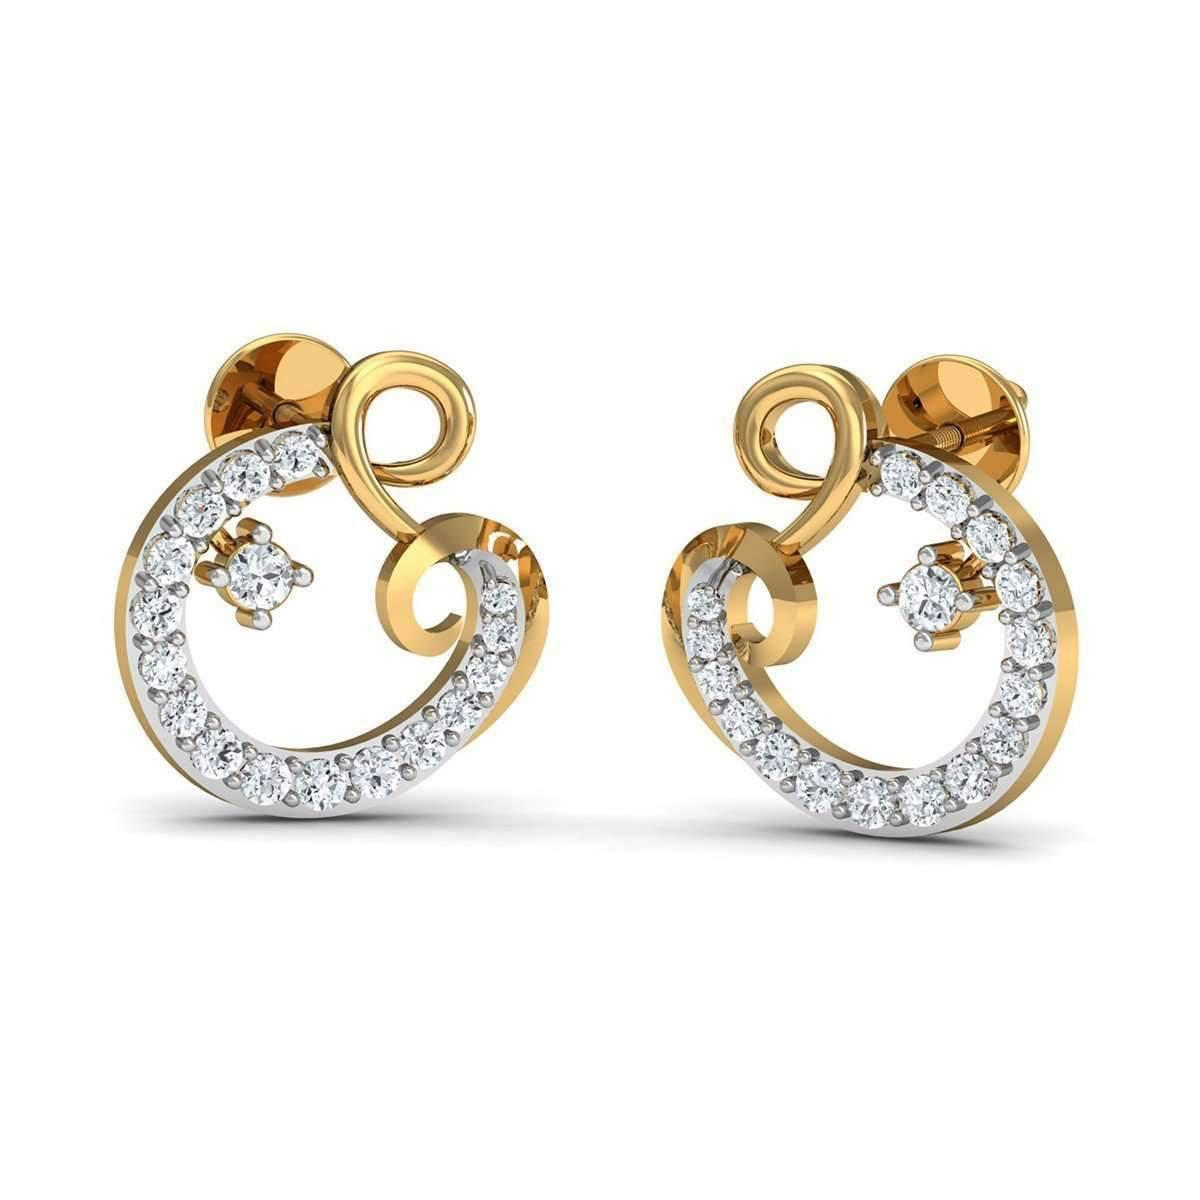 Diamoire Jewels Pave Earrings Handmade from Quality 14kt Rose Gold and Diamonds qat70VR5q